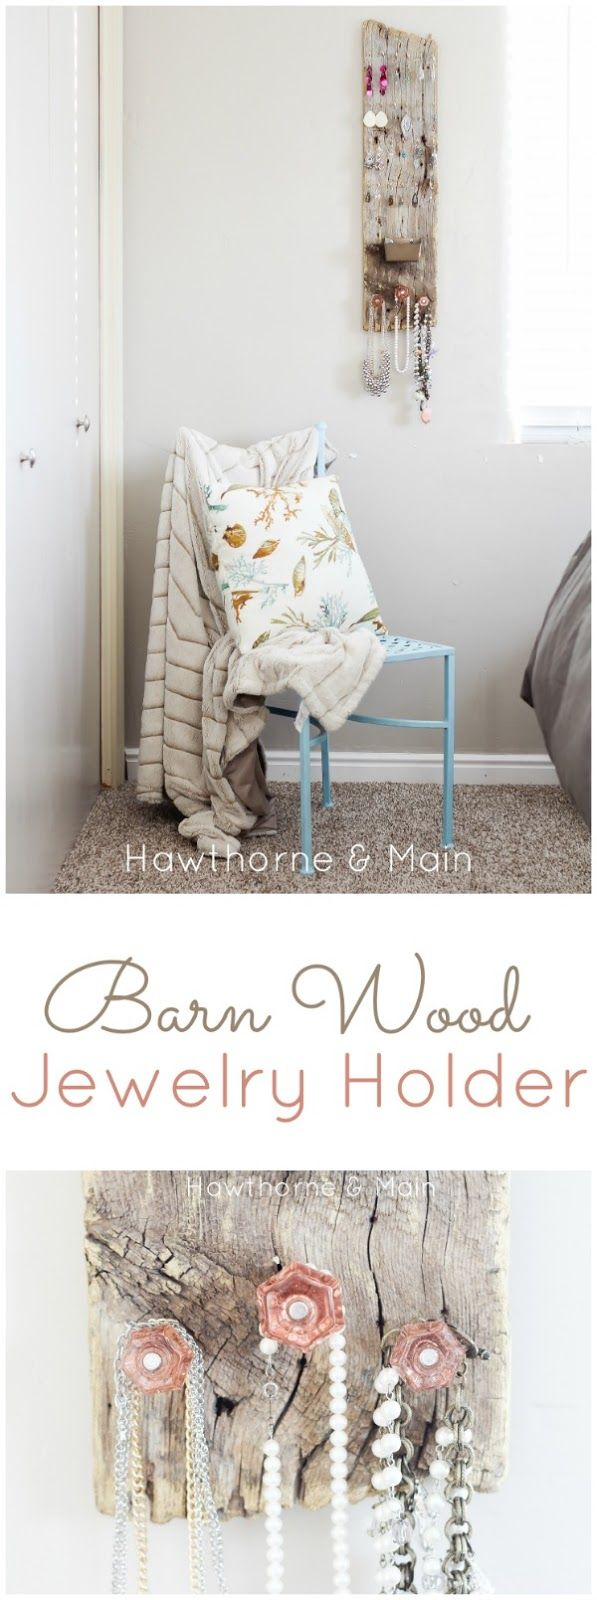 Barn Wood Jewelry Holder